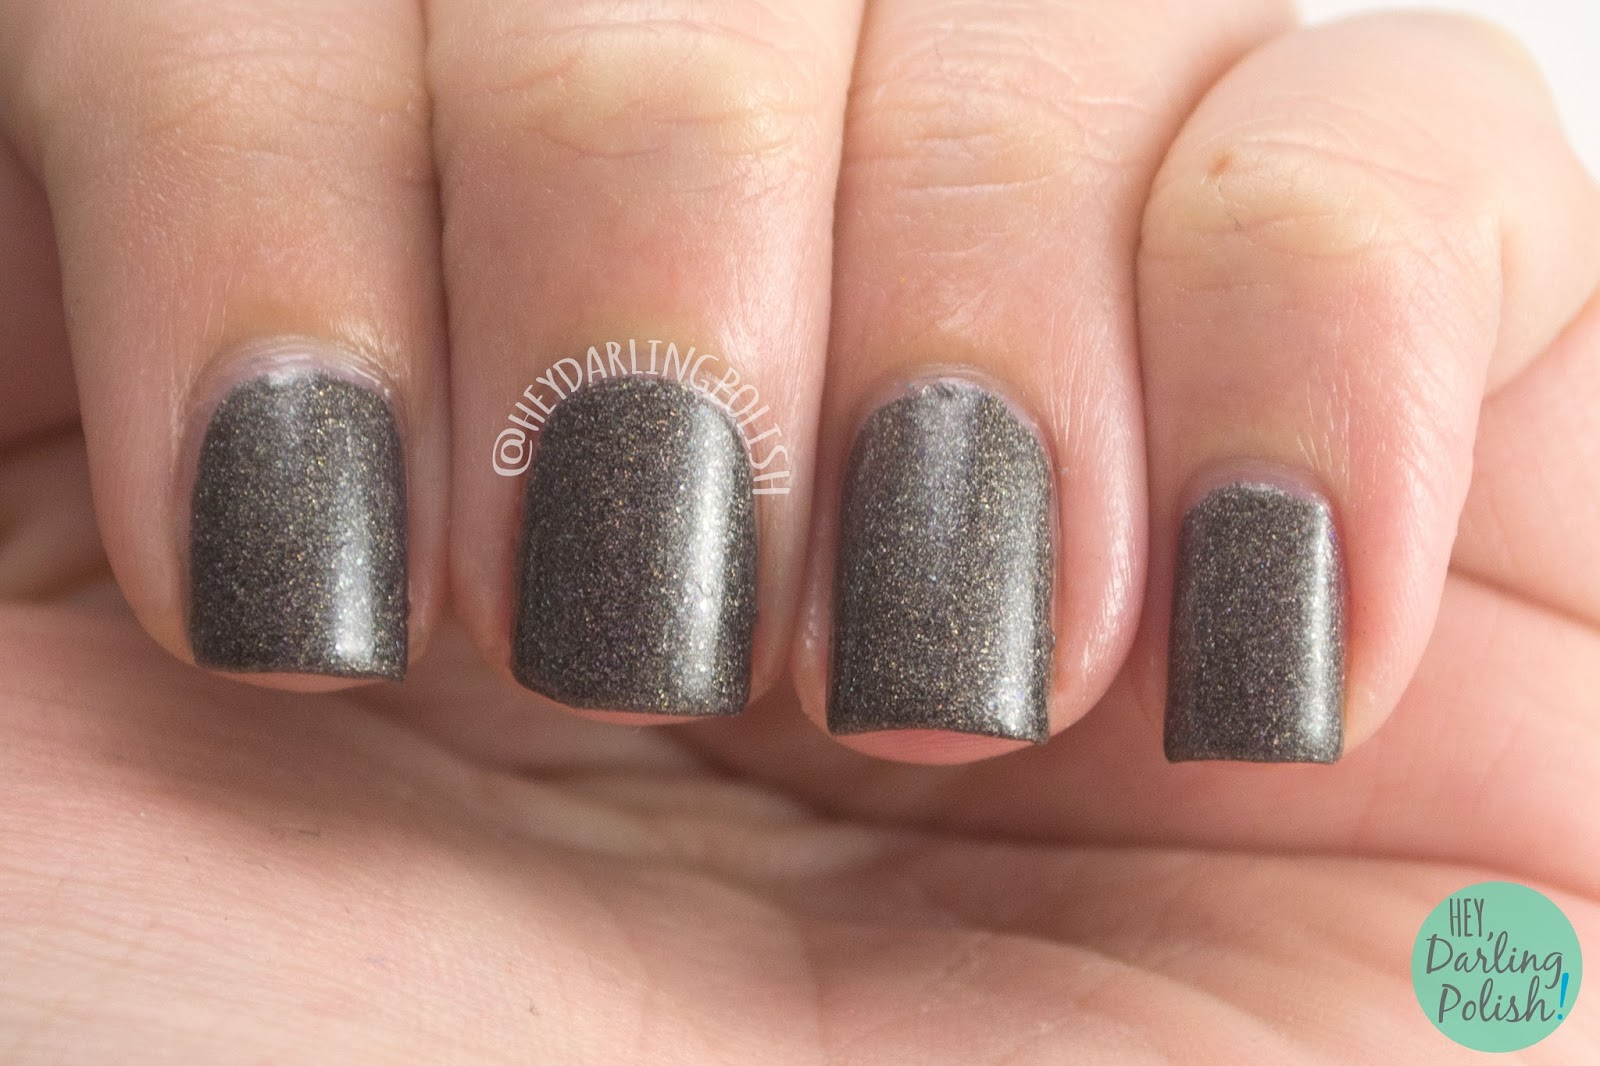 nails, nail polish, indie polish, indie nail polish, hey darling polish, black dahlia lacquer,  queen of the night, grey, holo, halloween